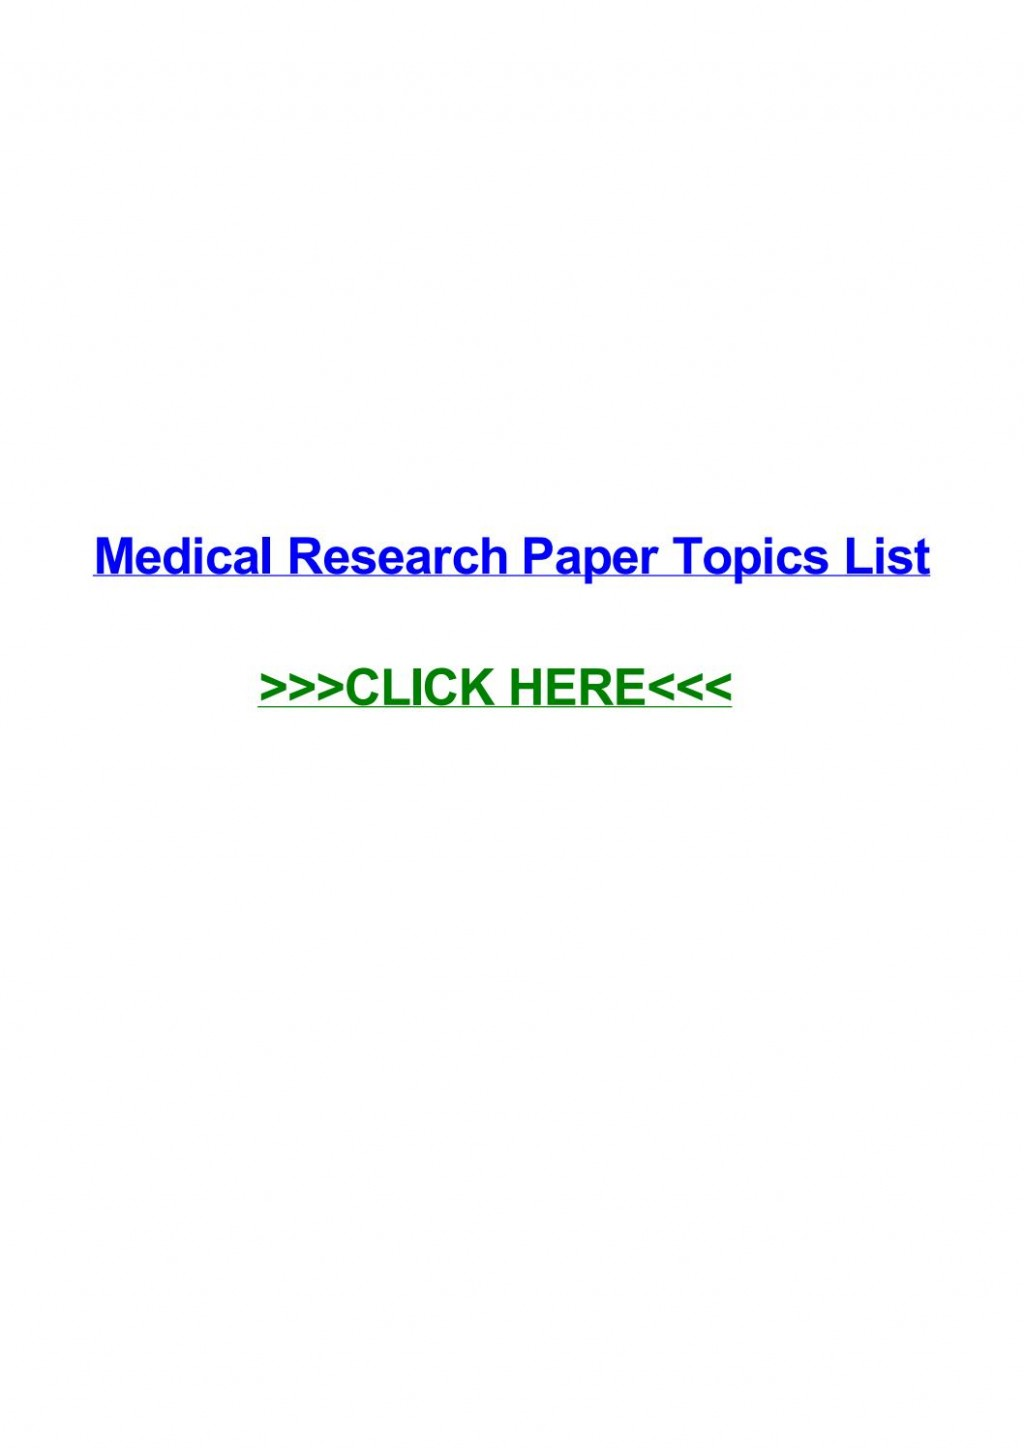 009 Medical Topics For Research Paper Page 1 Imposing Hot Papers Argumentative Best Large